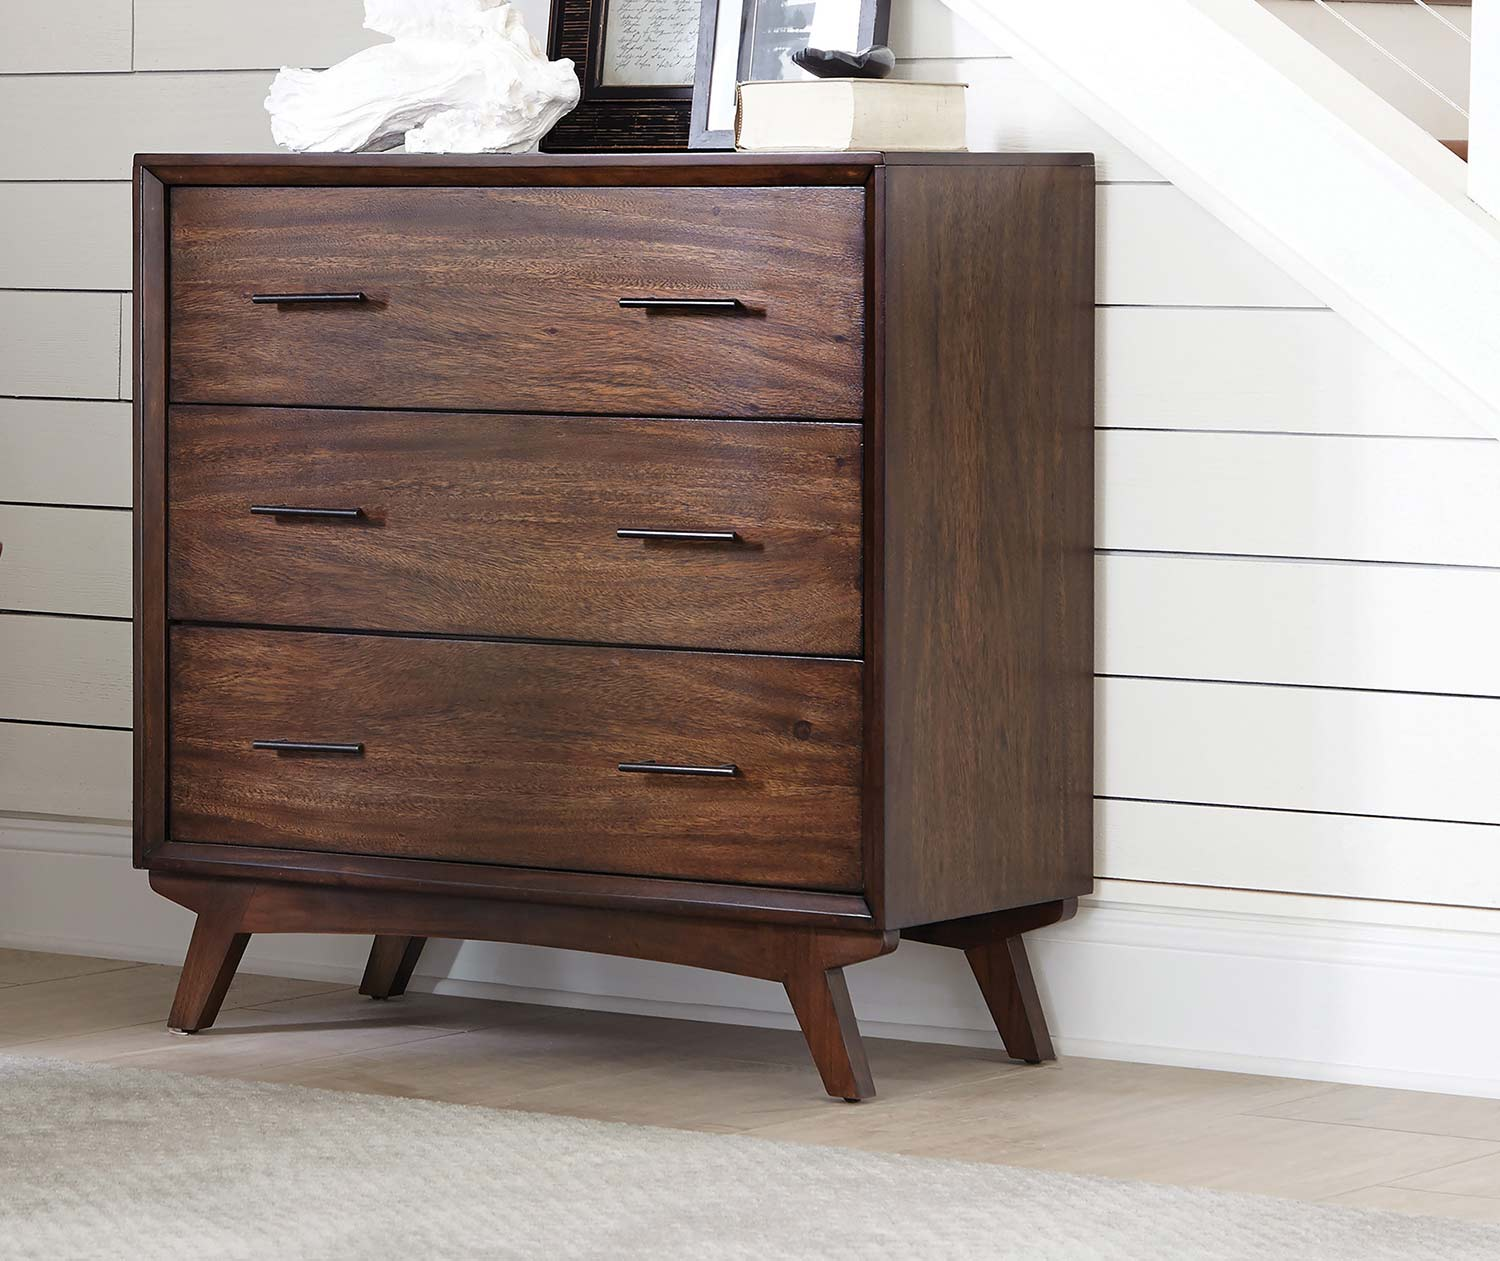 Coaster 950760 Accent Cabinet - Warm Brown/Black